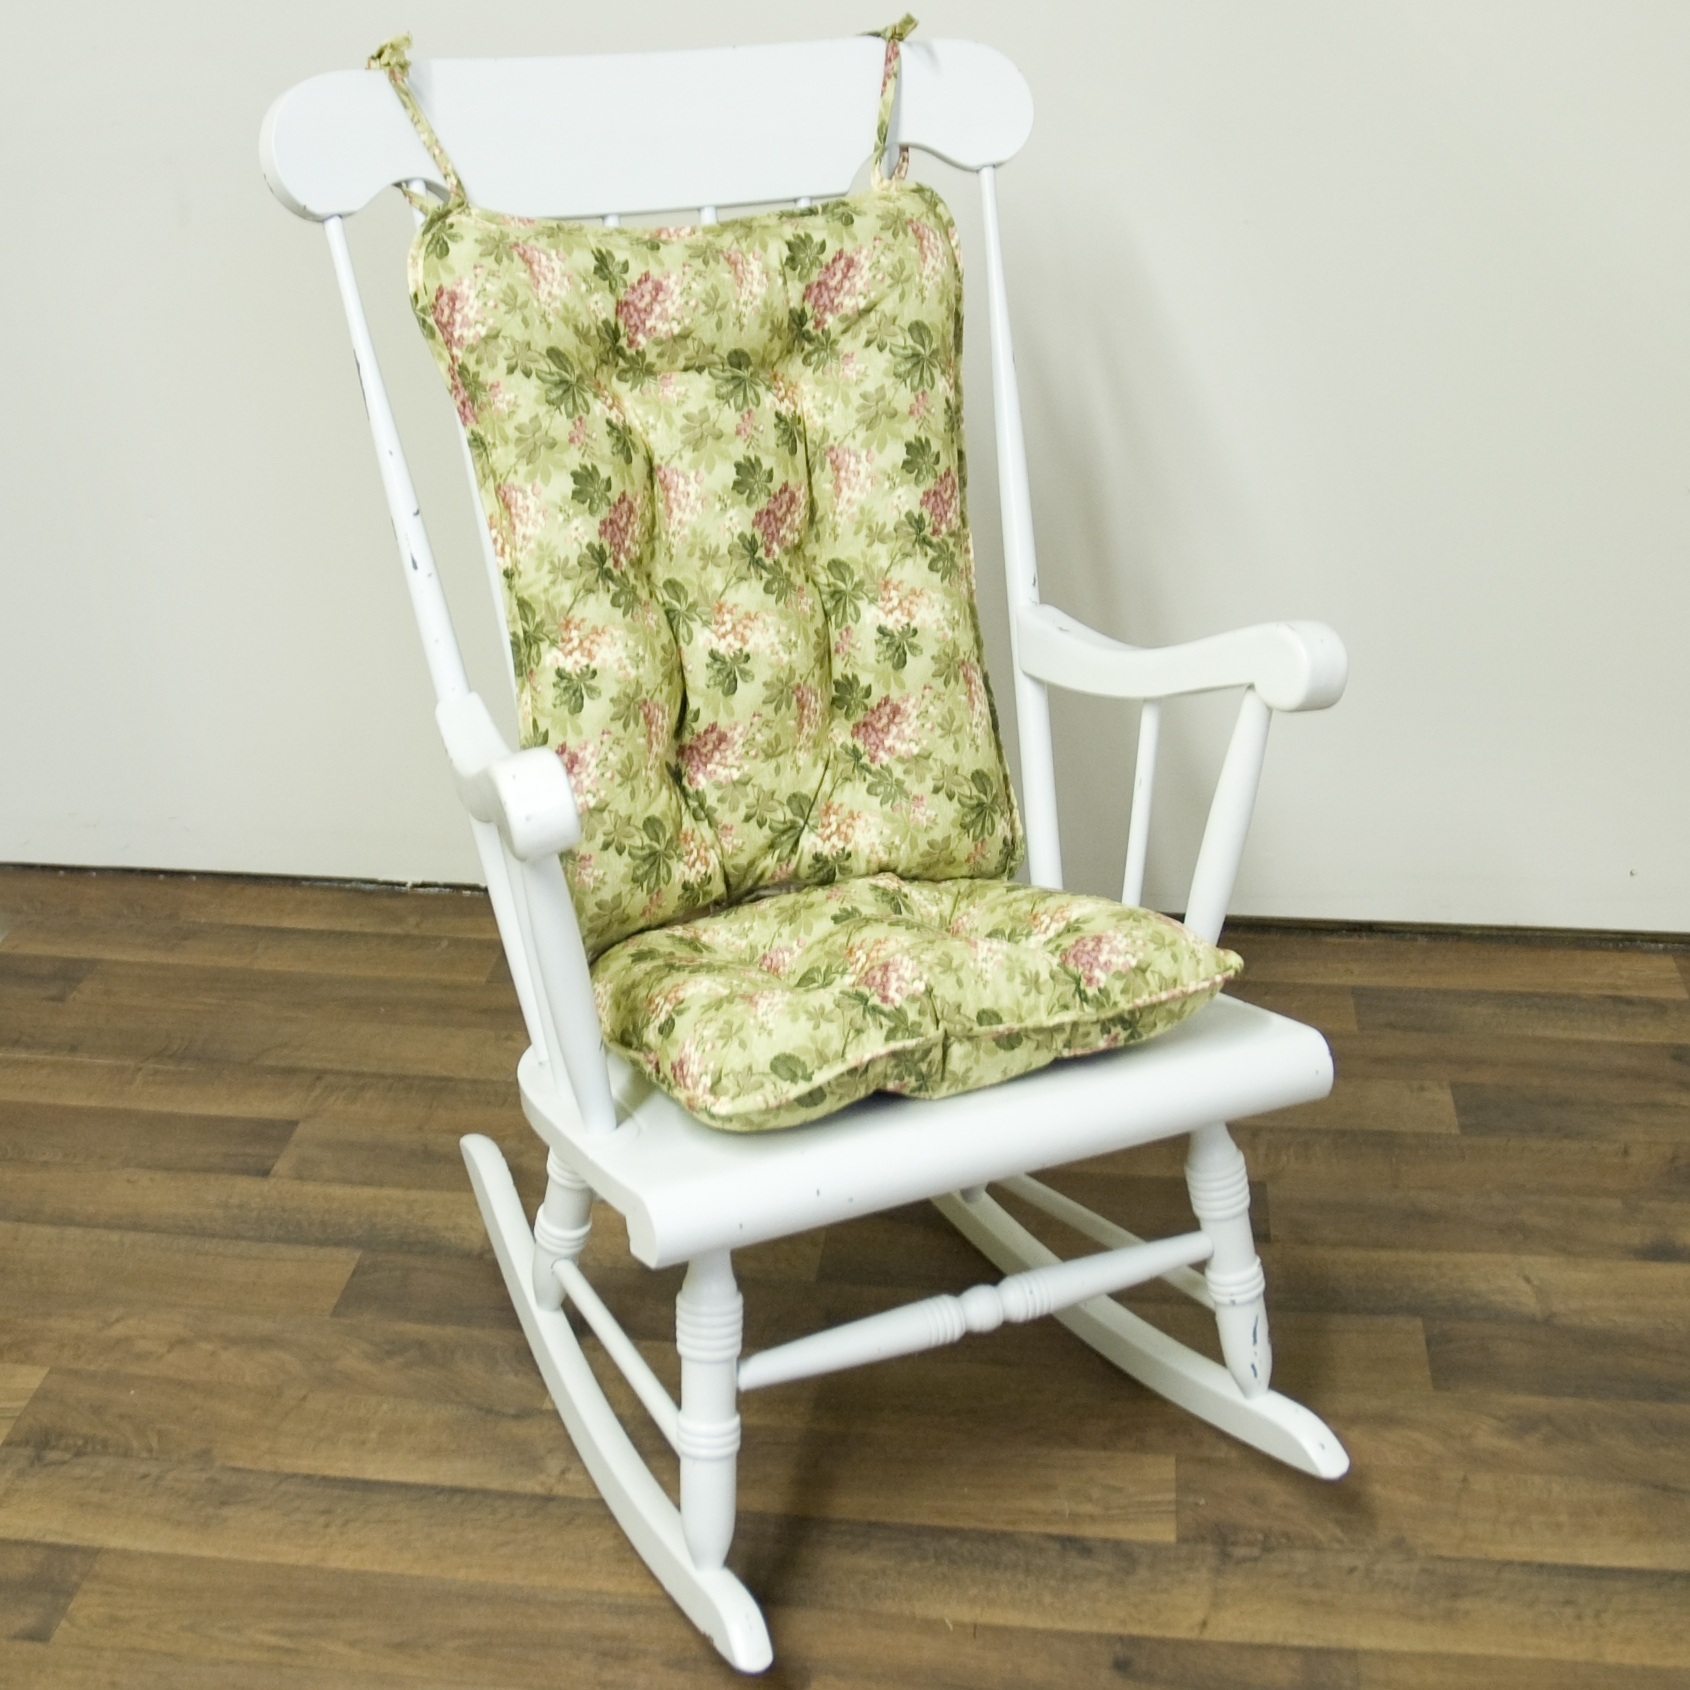 Outdoor Rocking Chair Cushions Flower : Beautiful Outdoor Rocking Inside Most Popular Yellow Outdoor Rocking Chairs (View 9 of 20)